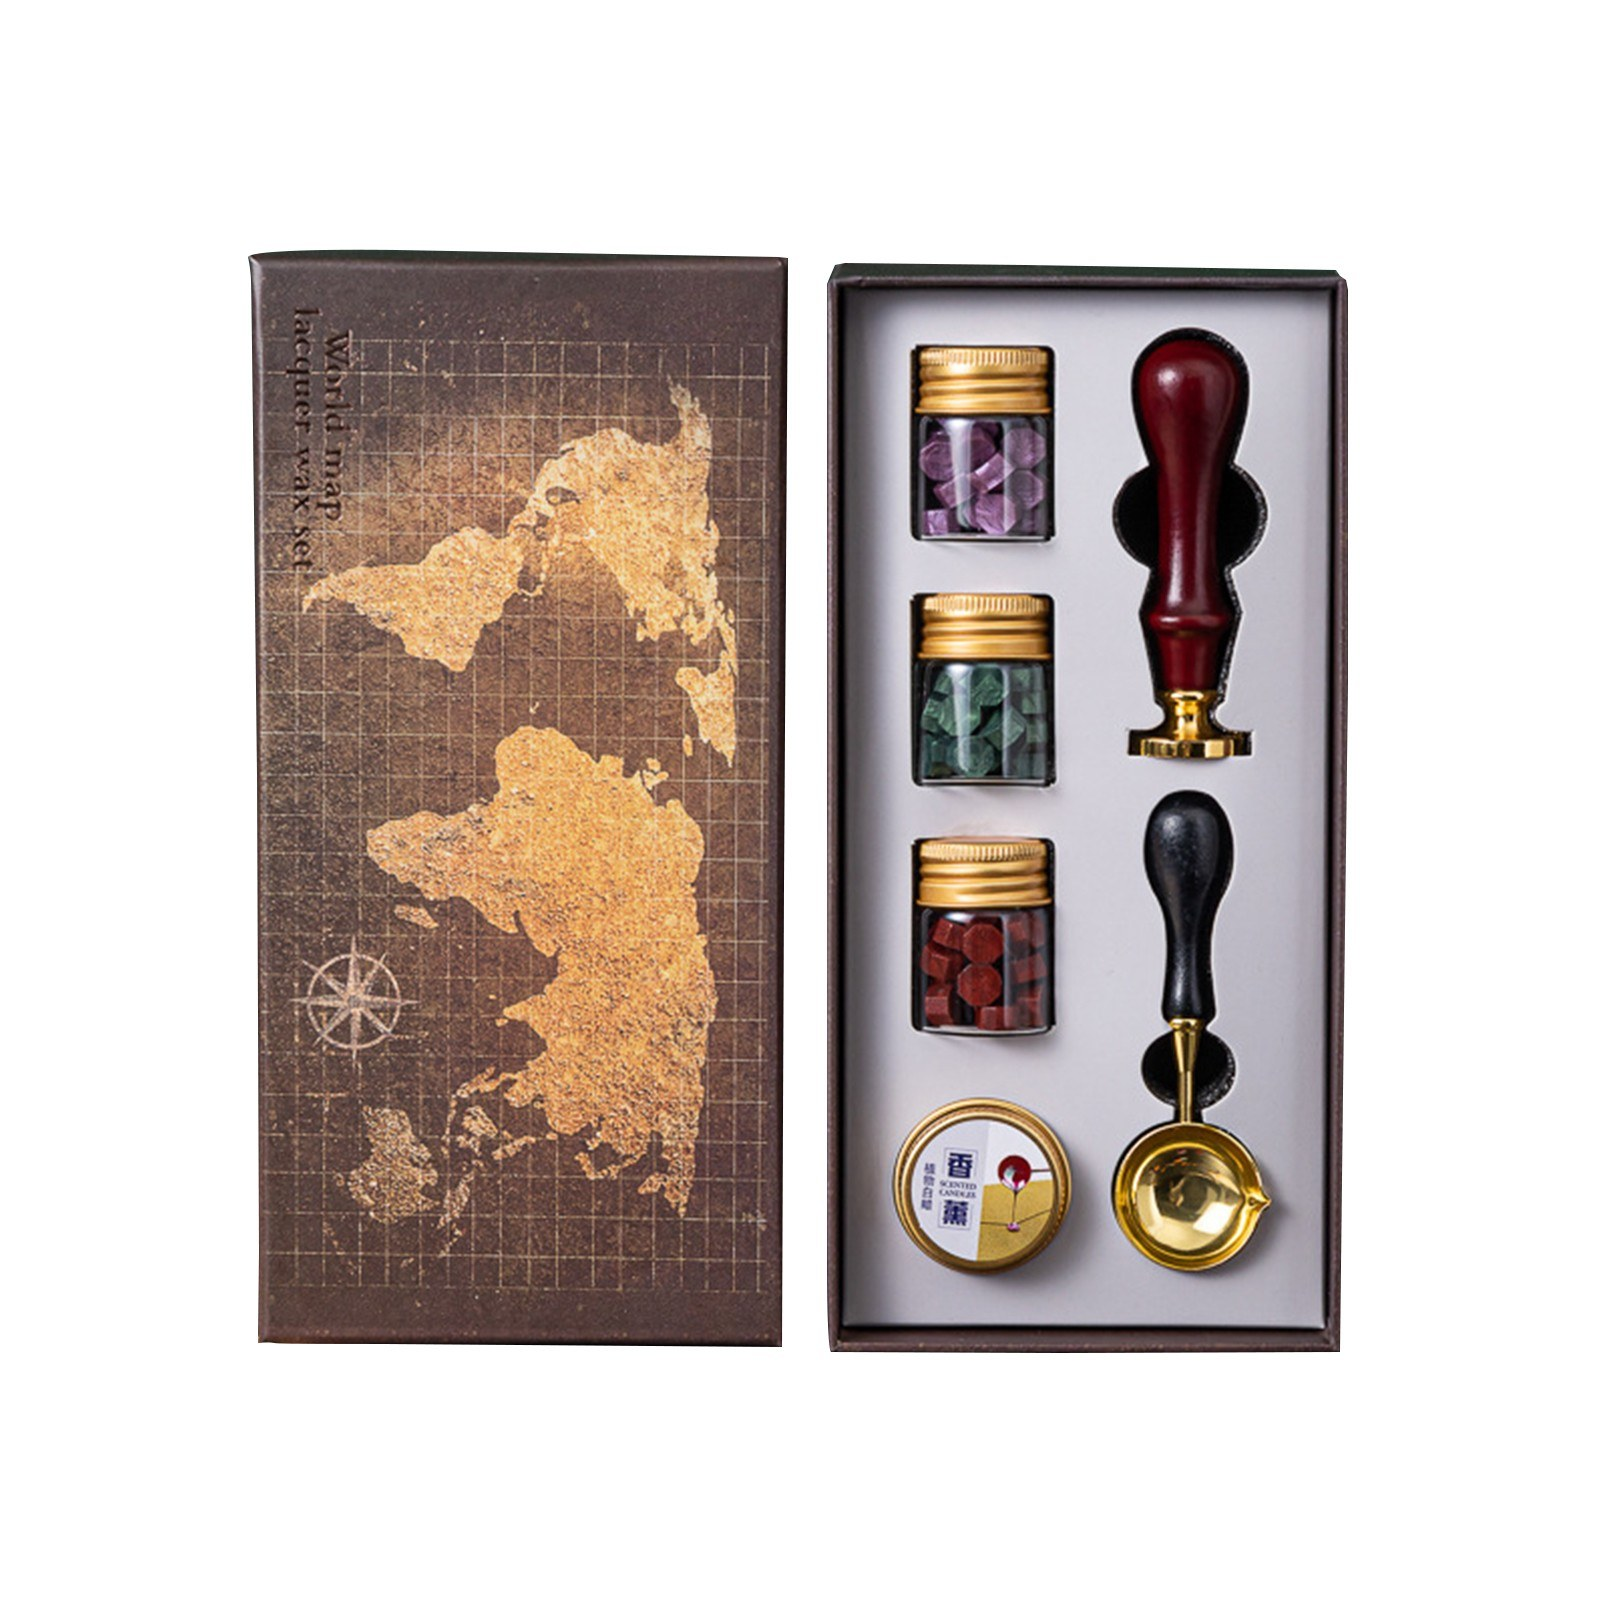 cafago.com - 66% OFF Vintage Wax Seal Kit with Gift Box Sealing Wax Beads Wax Seal Stamp Wax Melting Spoon Candle,free shipping+$13.14